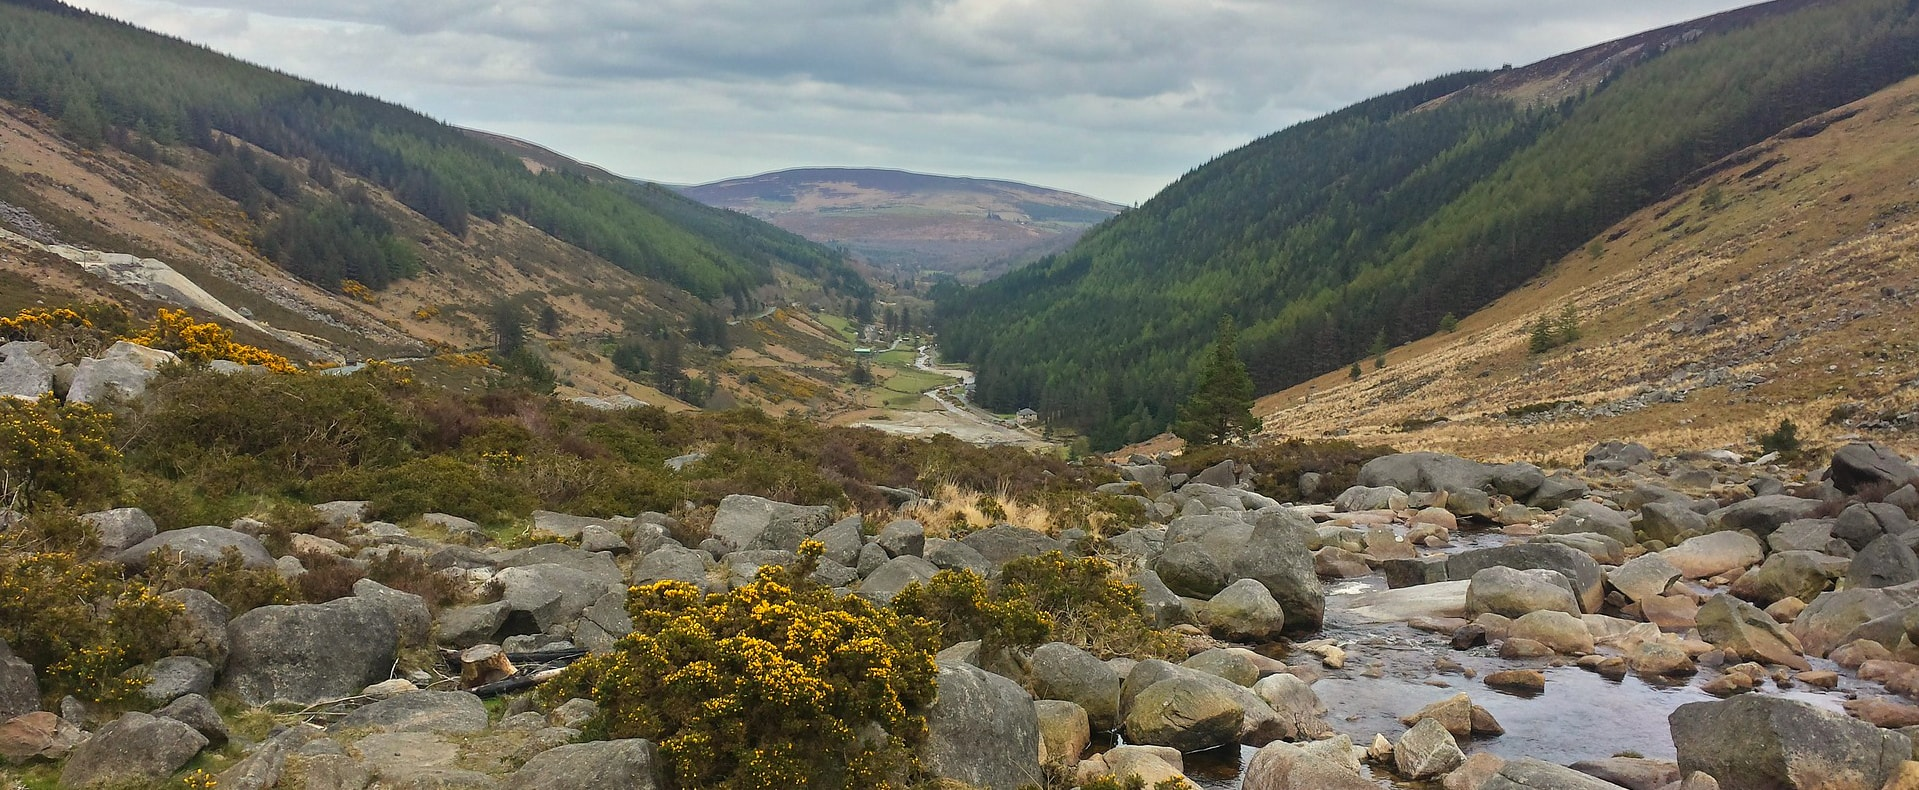 The County Wicklow